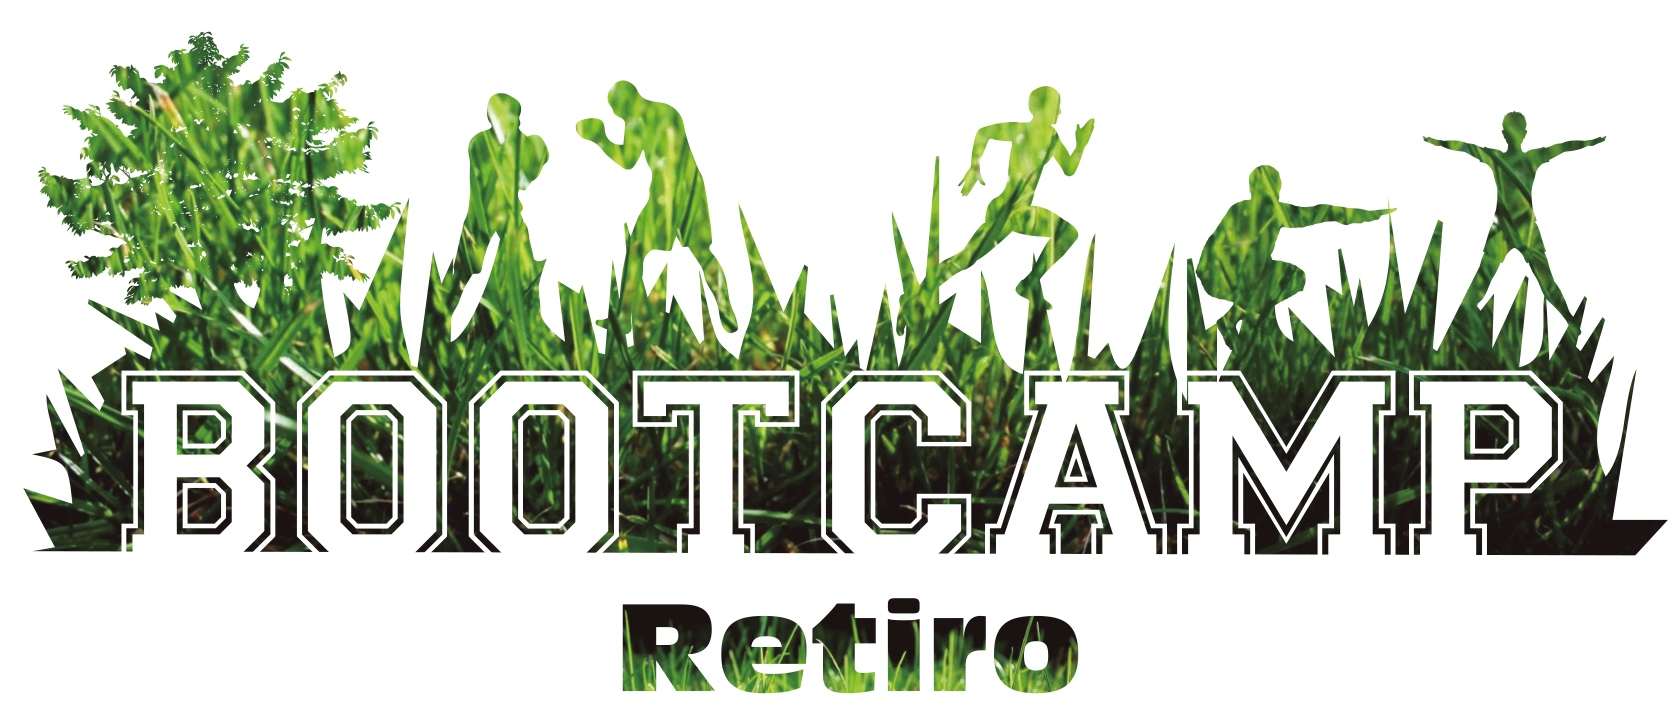 Since 2009, the first Bootcamp in Madrid